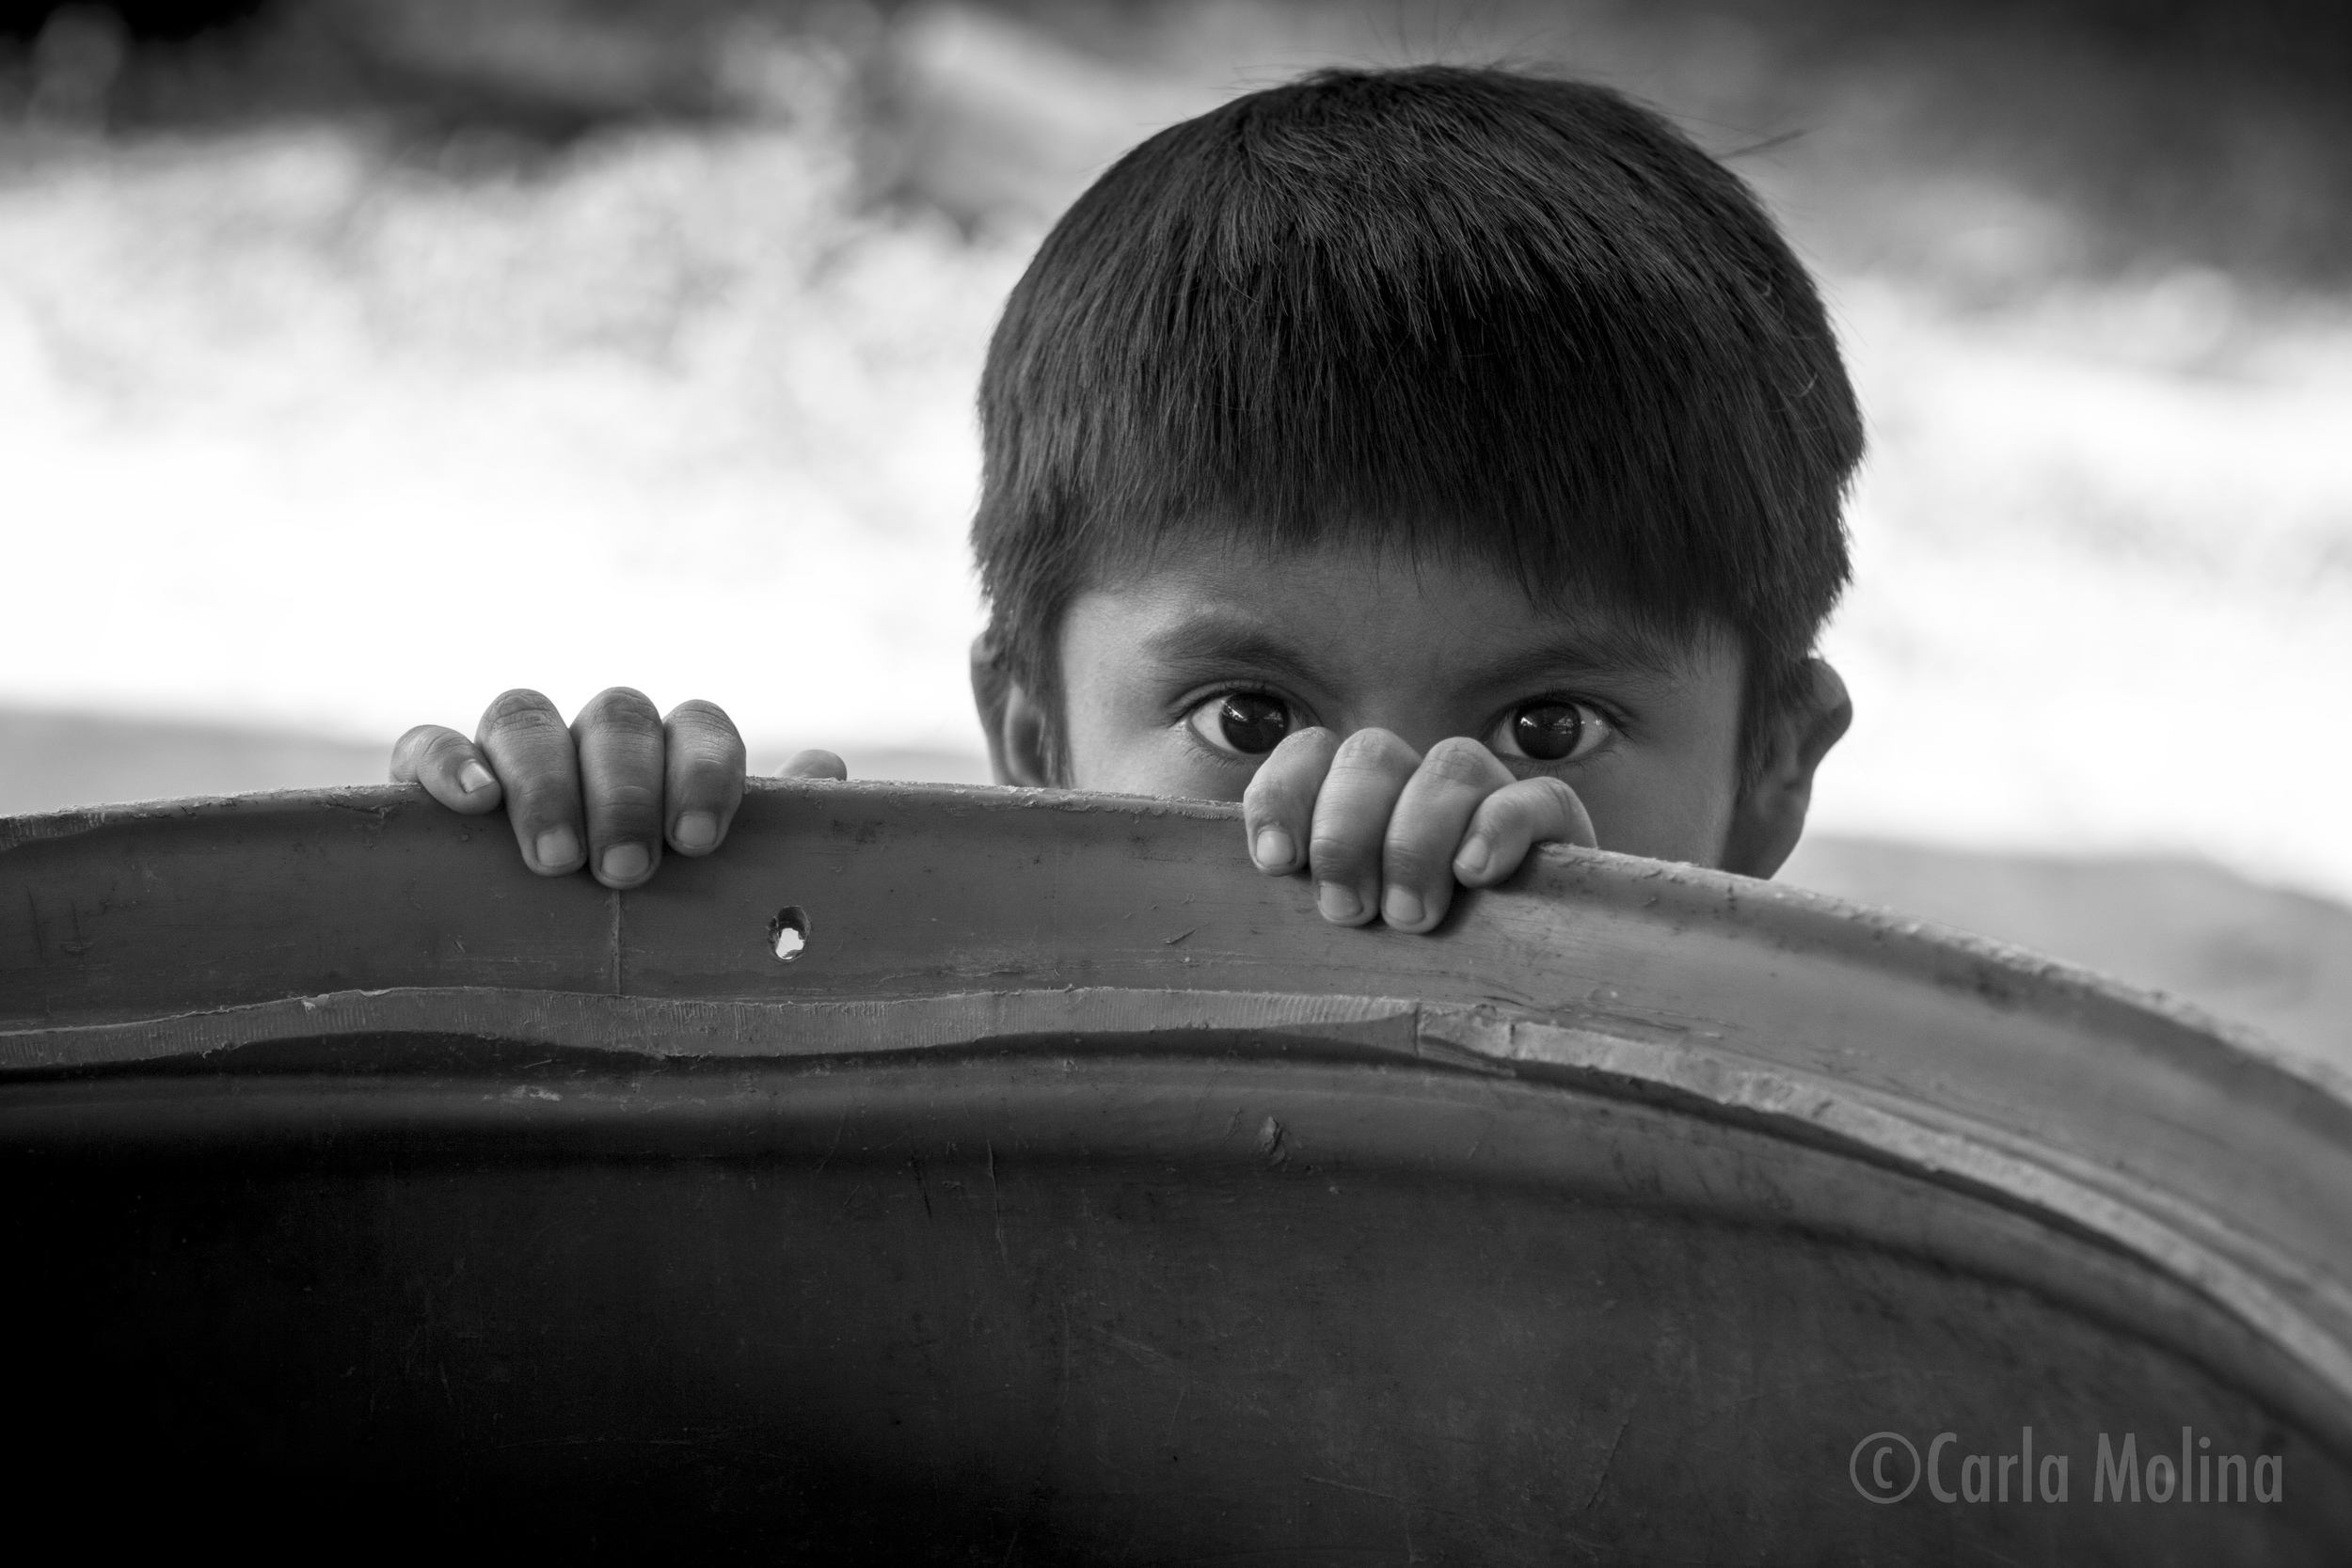 Boy Peeking  (rio Dulce, Guatemala)  11 X 17 PRINT $55  20 X 30 PRINT $105  Big eyes filled with curious mischief peek out from behind a barrel. © Carla Molina